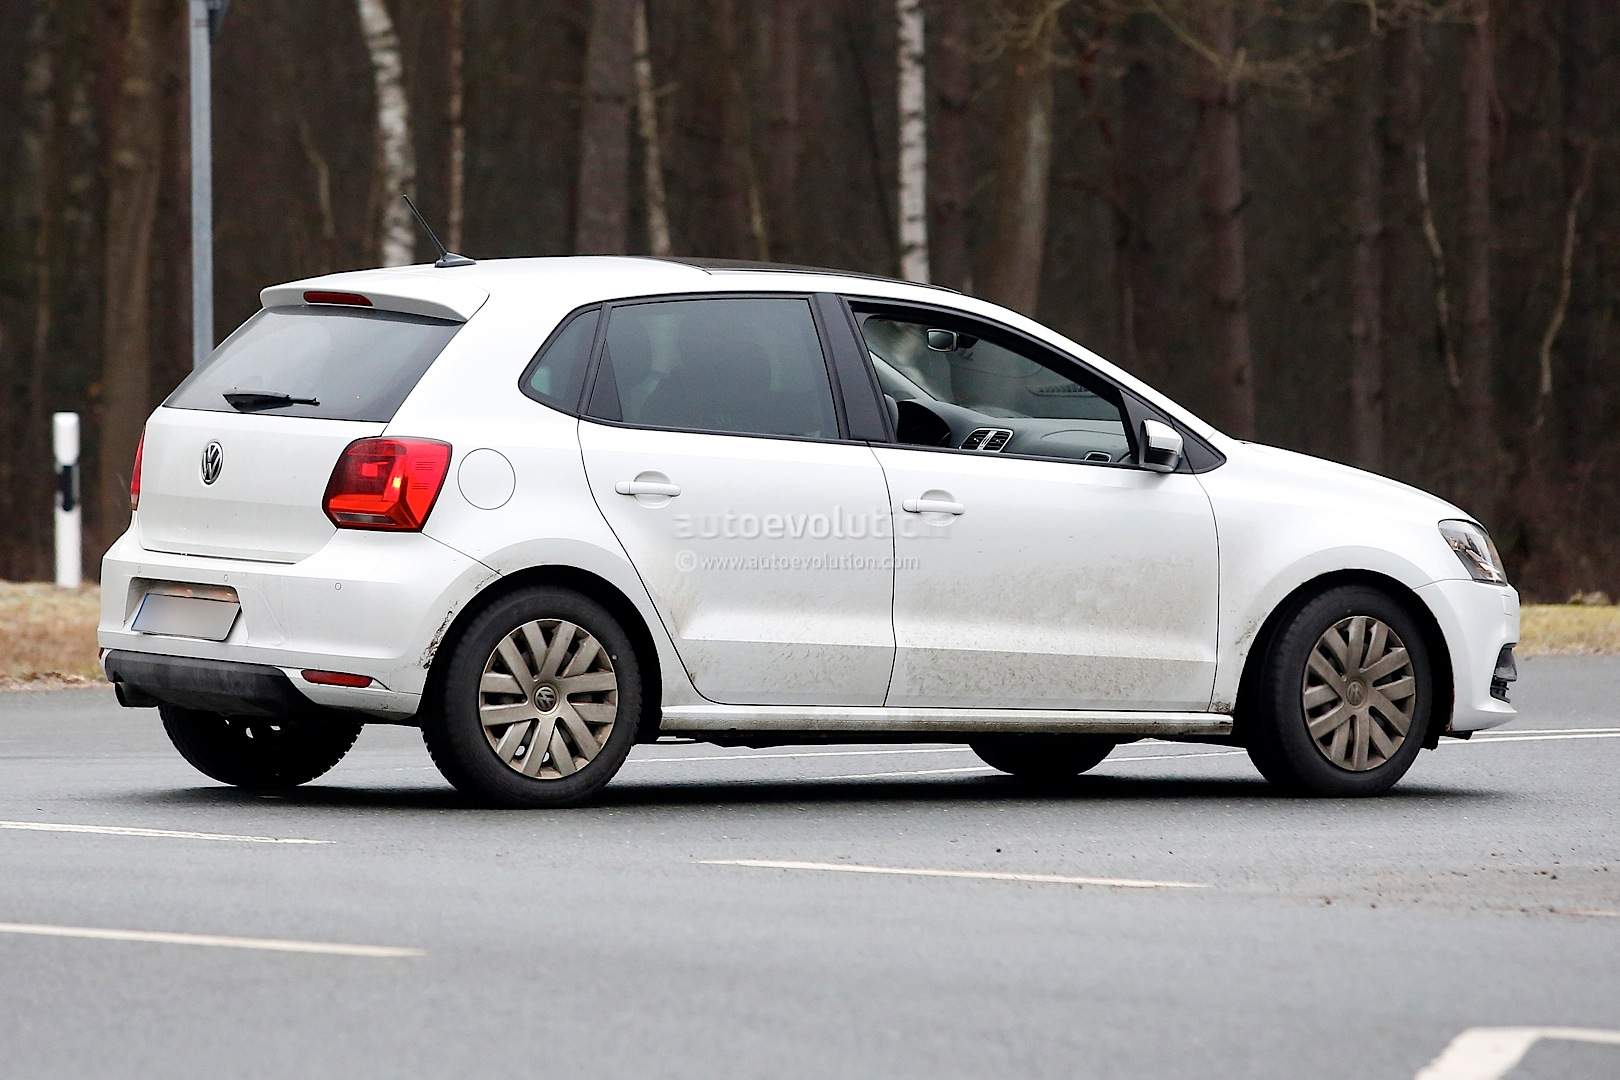 Spyshots Vw Polo Facelift Details Revealed First Interior Photo